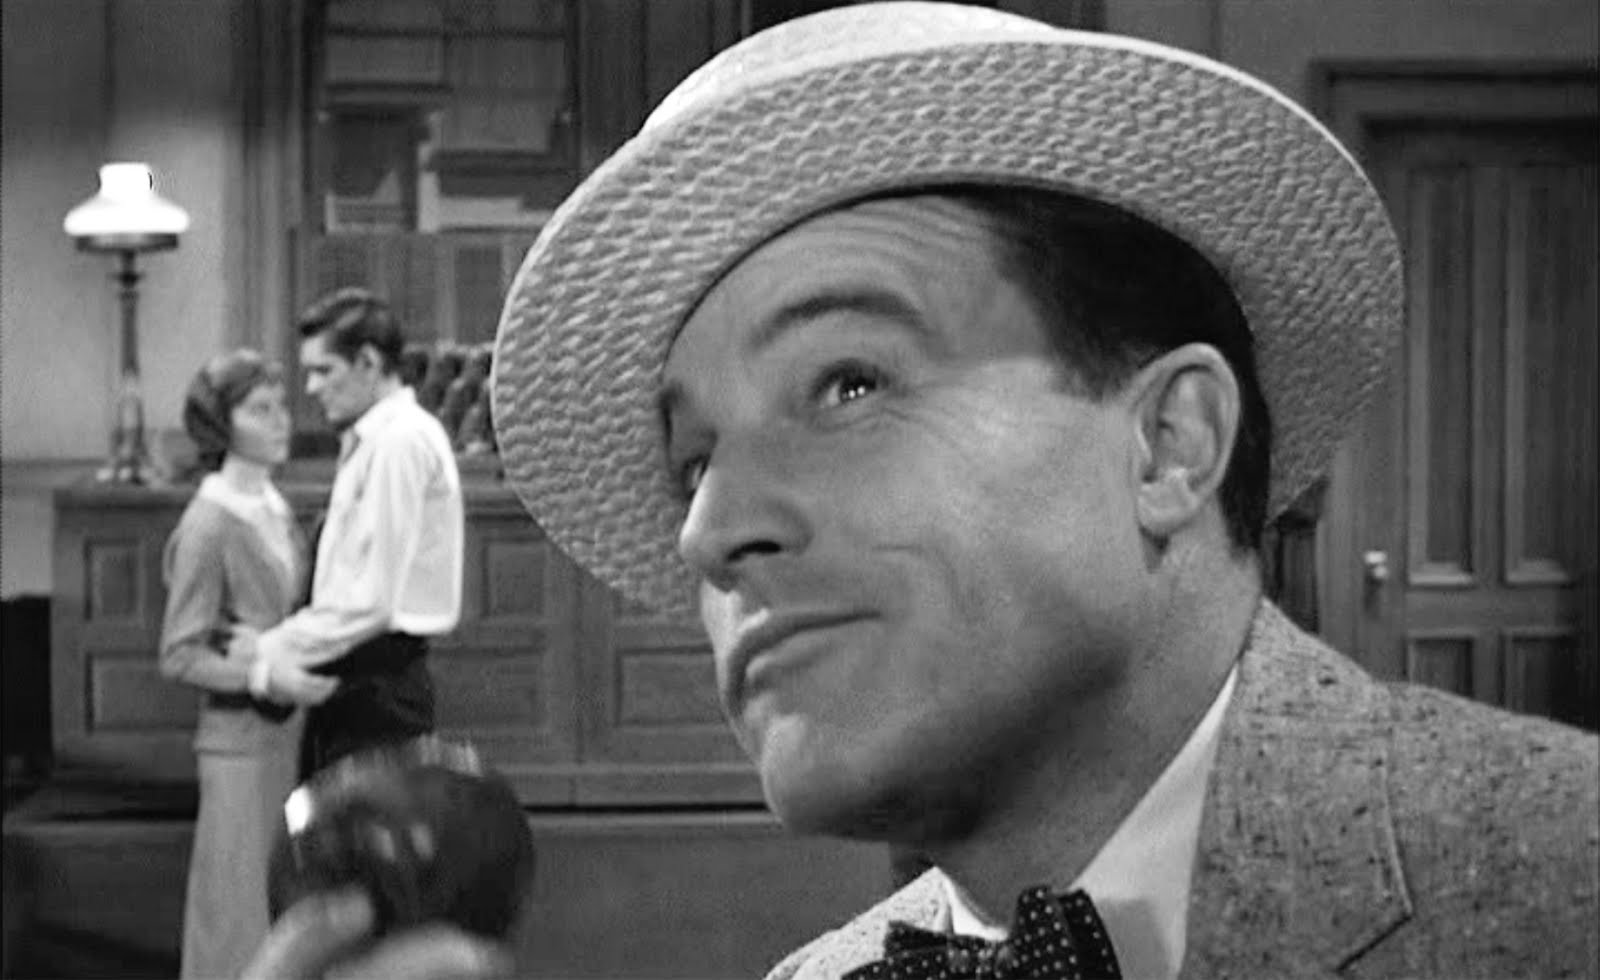 a review of inherit the wind a movie by stanley kramer Inherit the wind directed by: stanley kramer starring: gene kelly, fredric march, spencer tracy genres: legal drama rated the #29 best film of 1960, and #1804 in the greatest all-time movies (according to rym users.